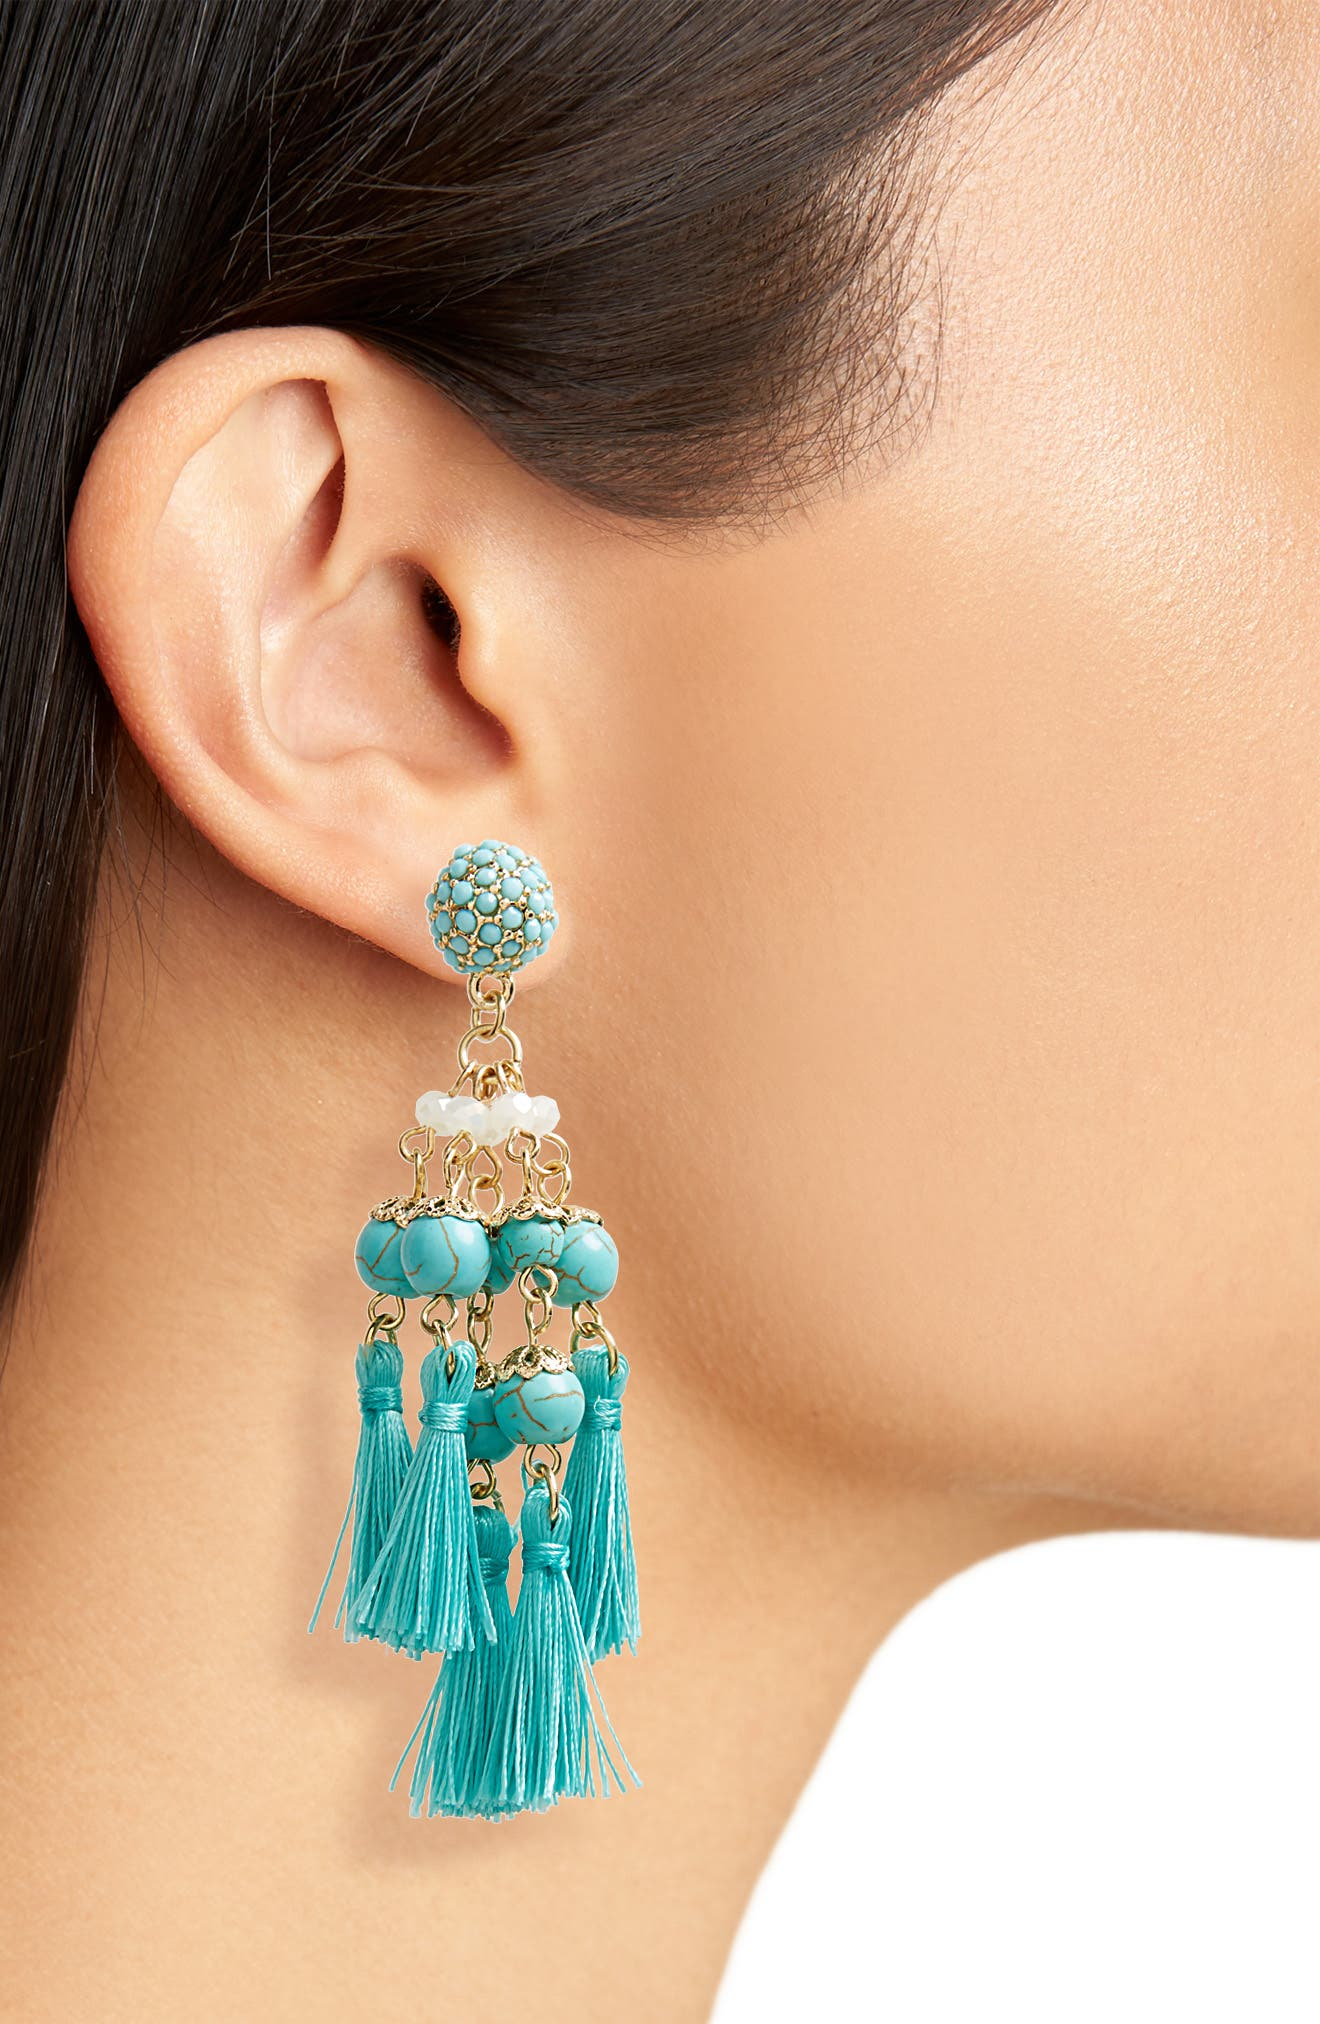 Tassel Howlite Bead Earrings,                             Alternate thumbnail 2, color,                             Turquoise